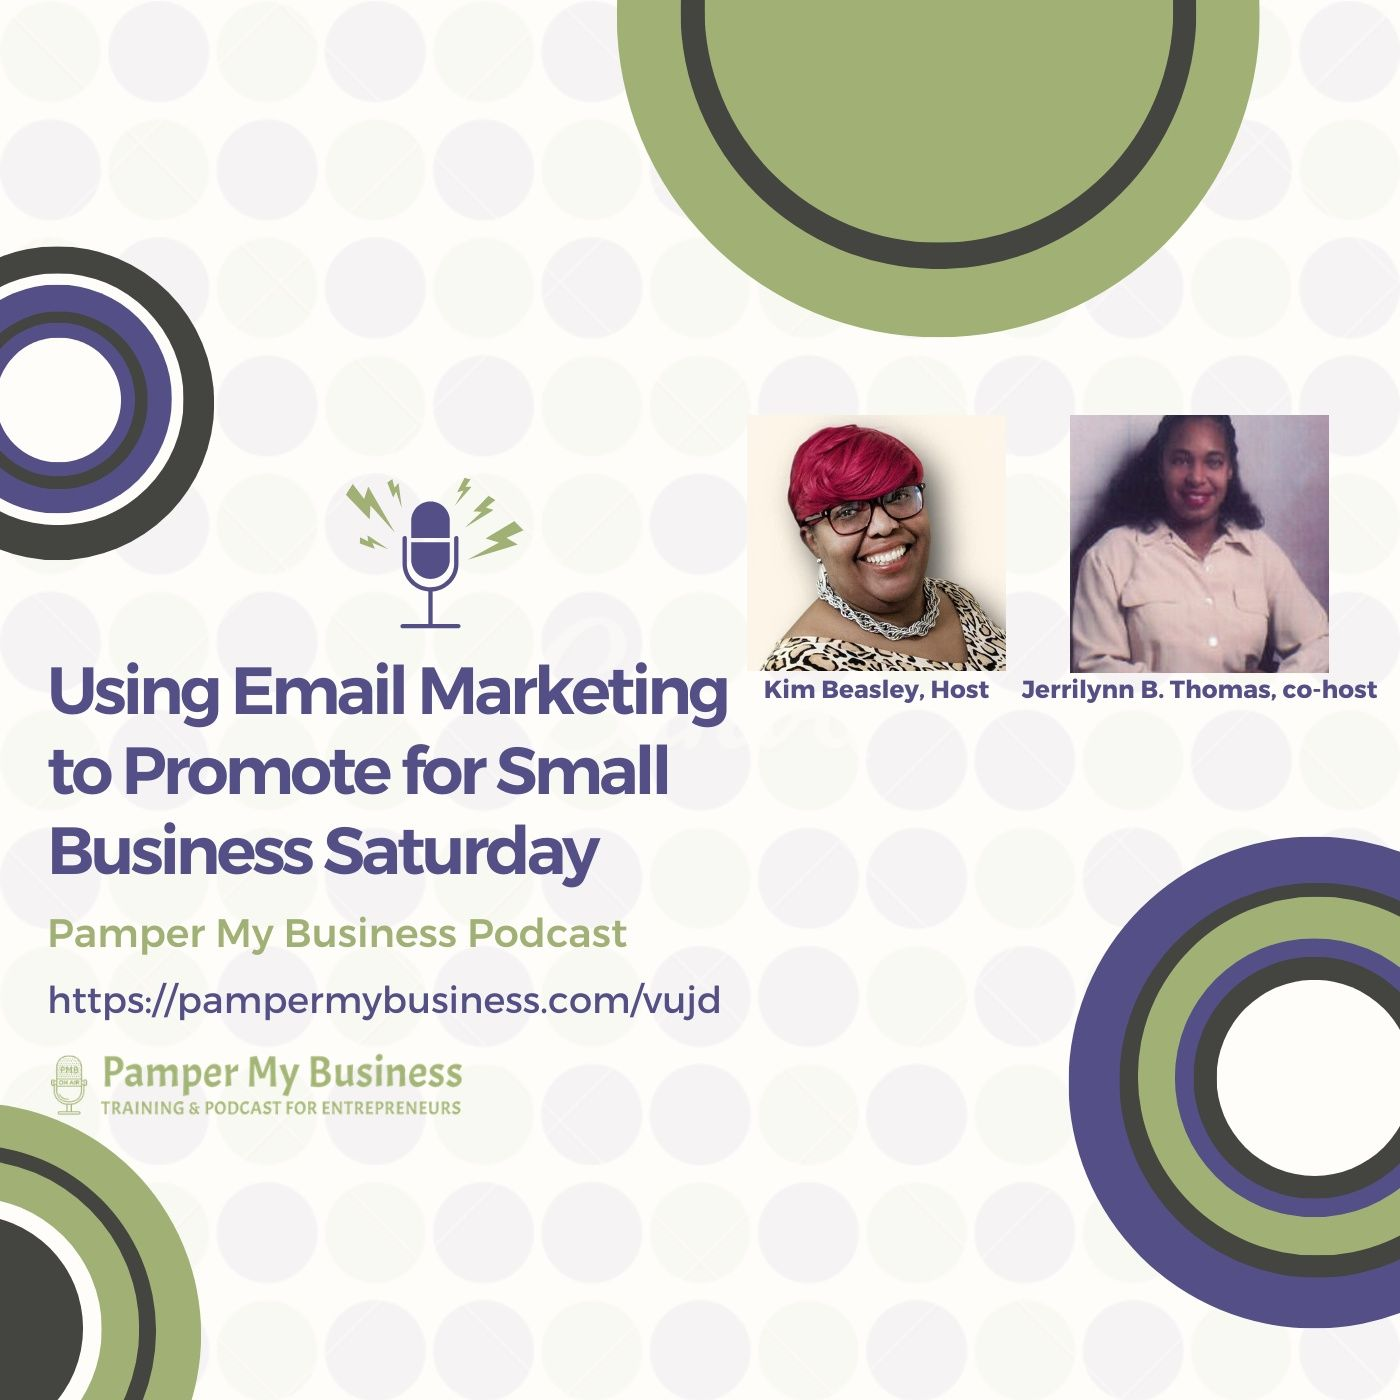 Using Email Marketing to Promote for Small Business Saturday